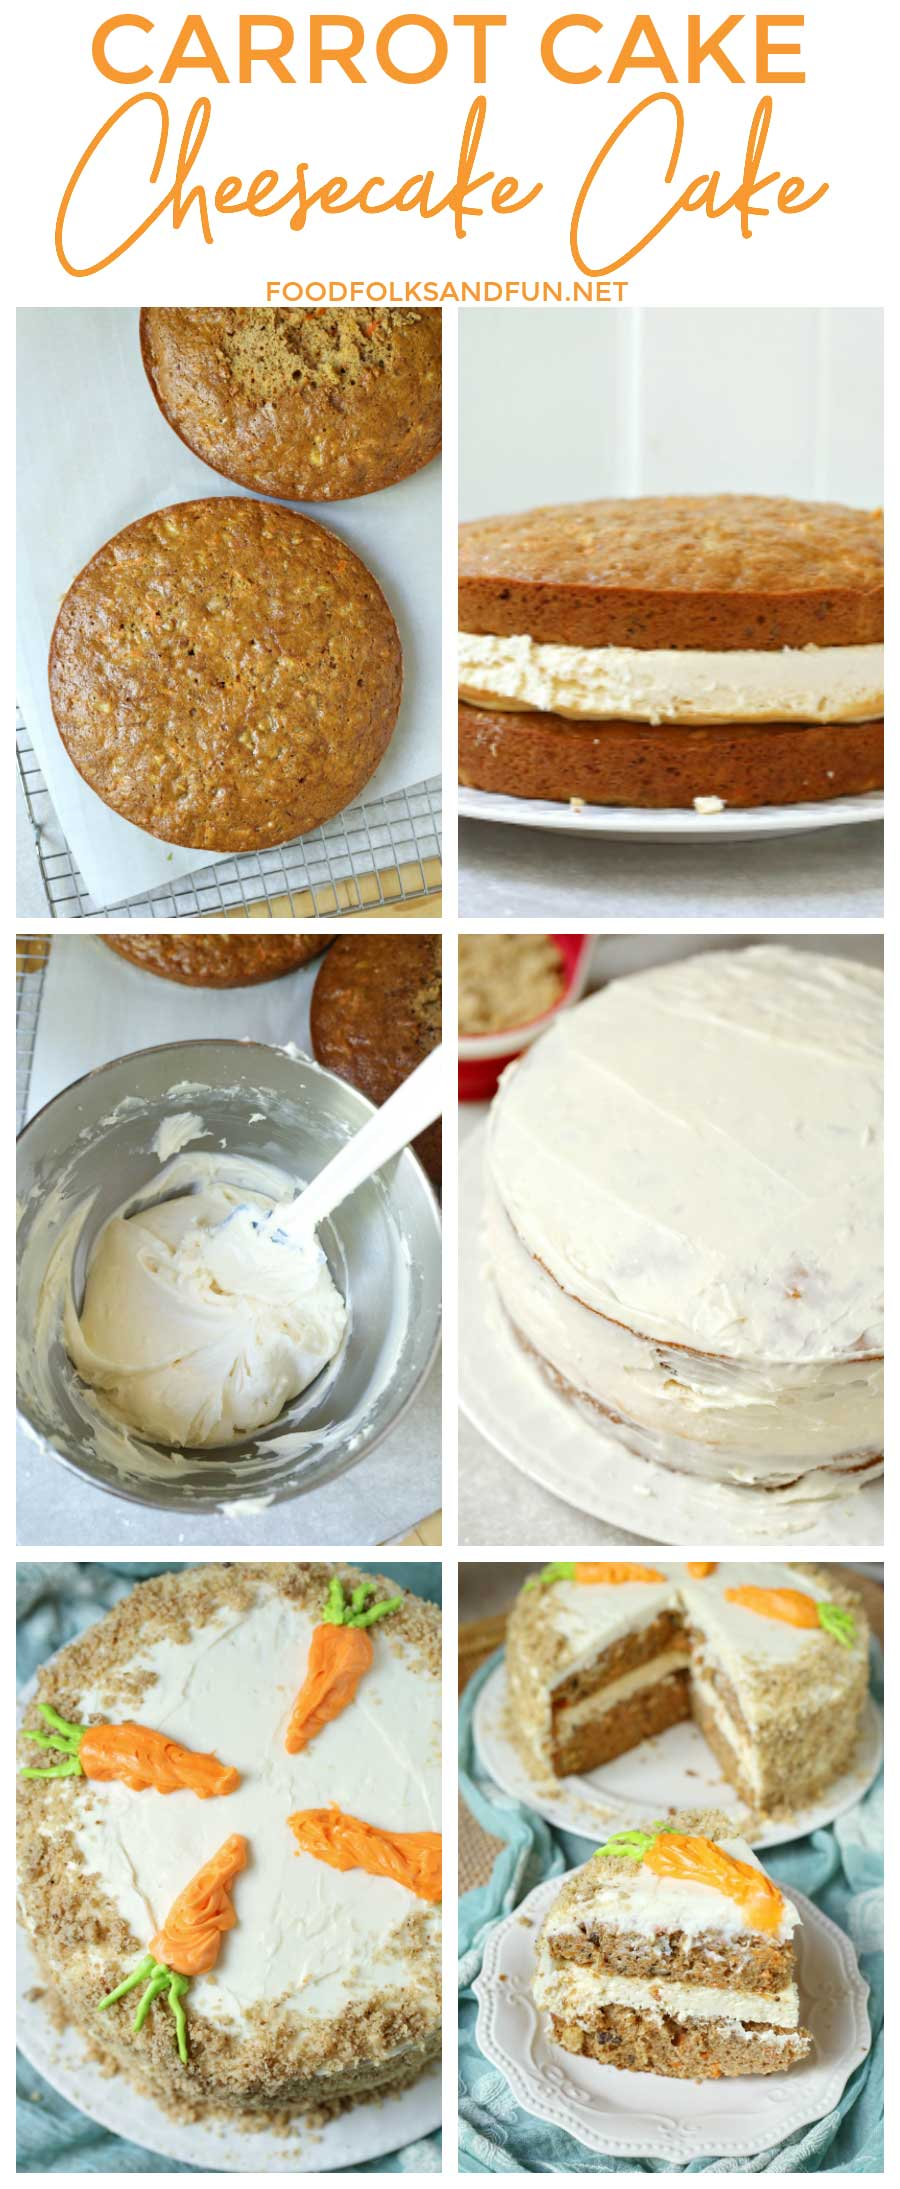 How to make Carrot Cake Cheesecake Cake with recipe video!